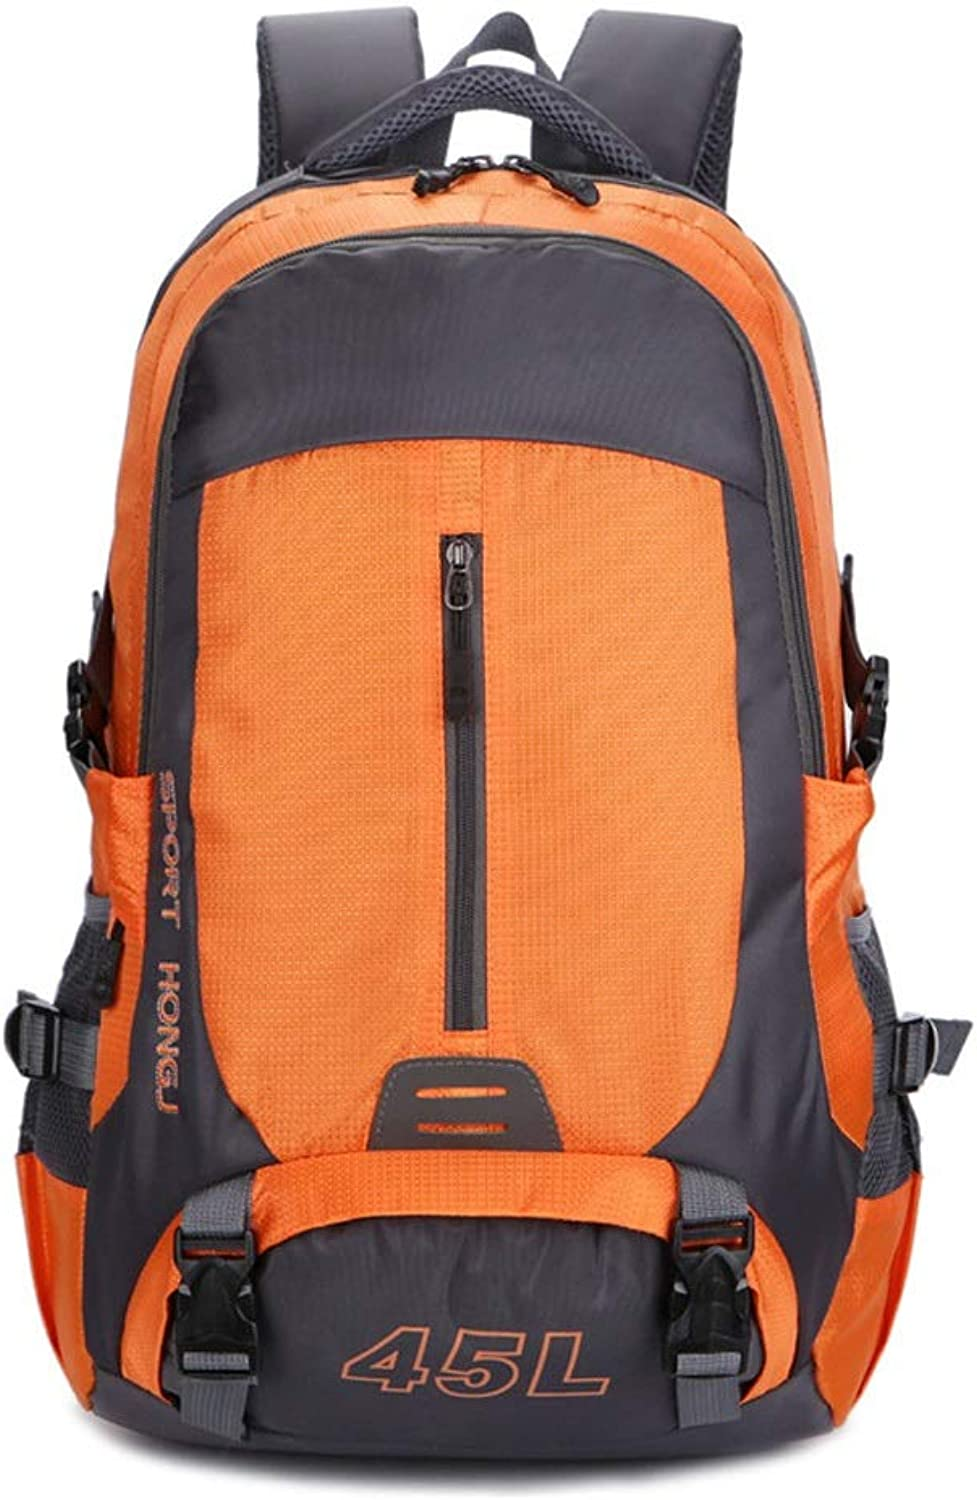 0a6d2bf82922 Outdoor Mountaineering Bag, 45L Light Travel Backpack, Waterproof ...